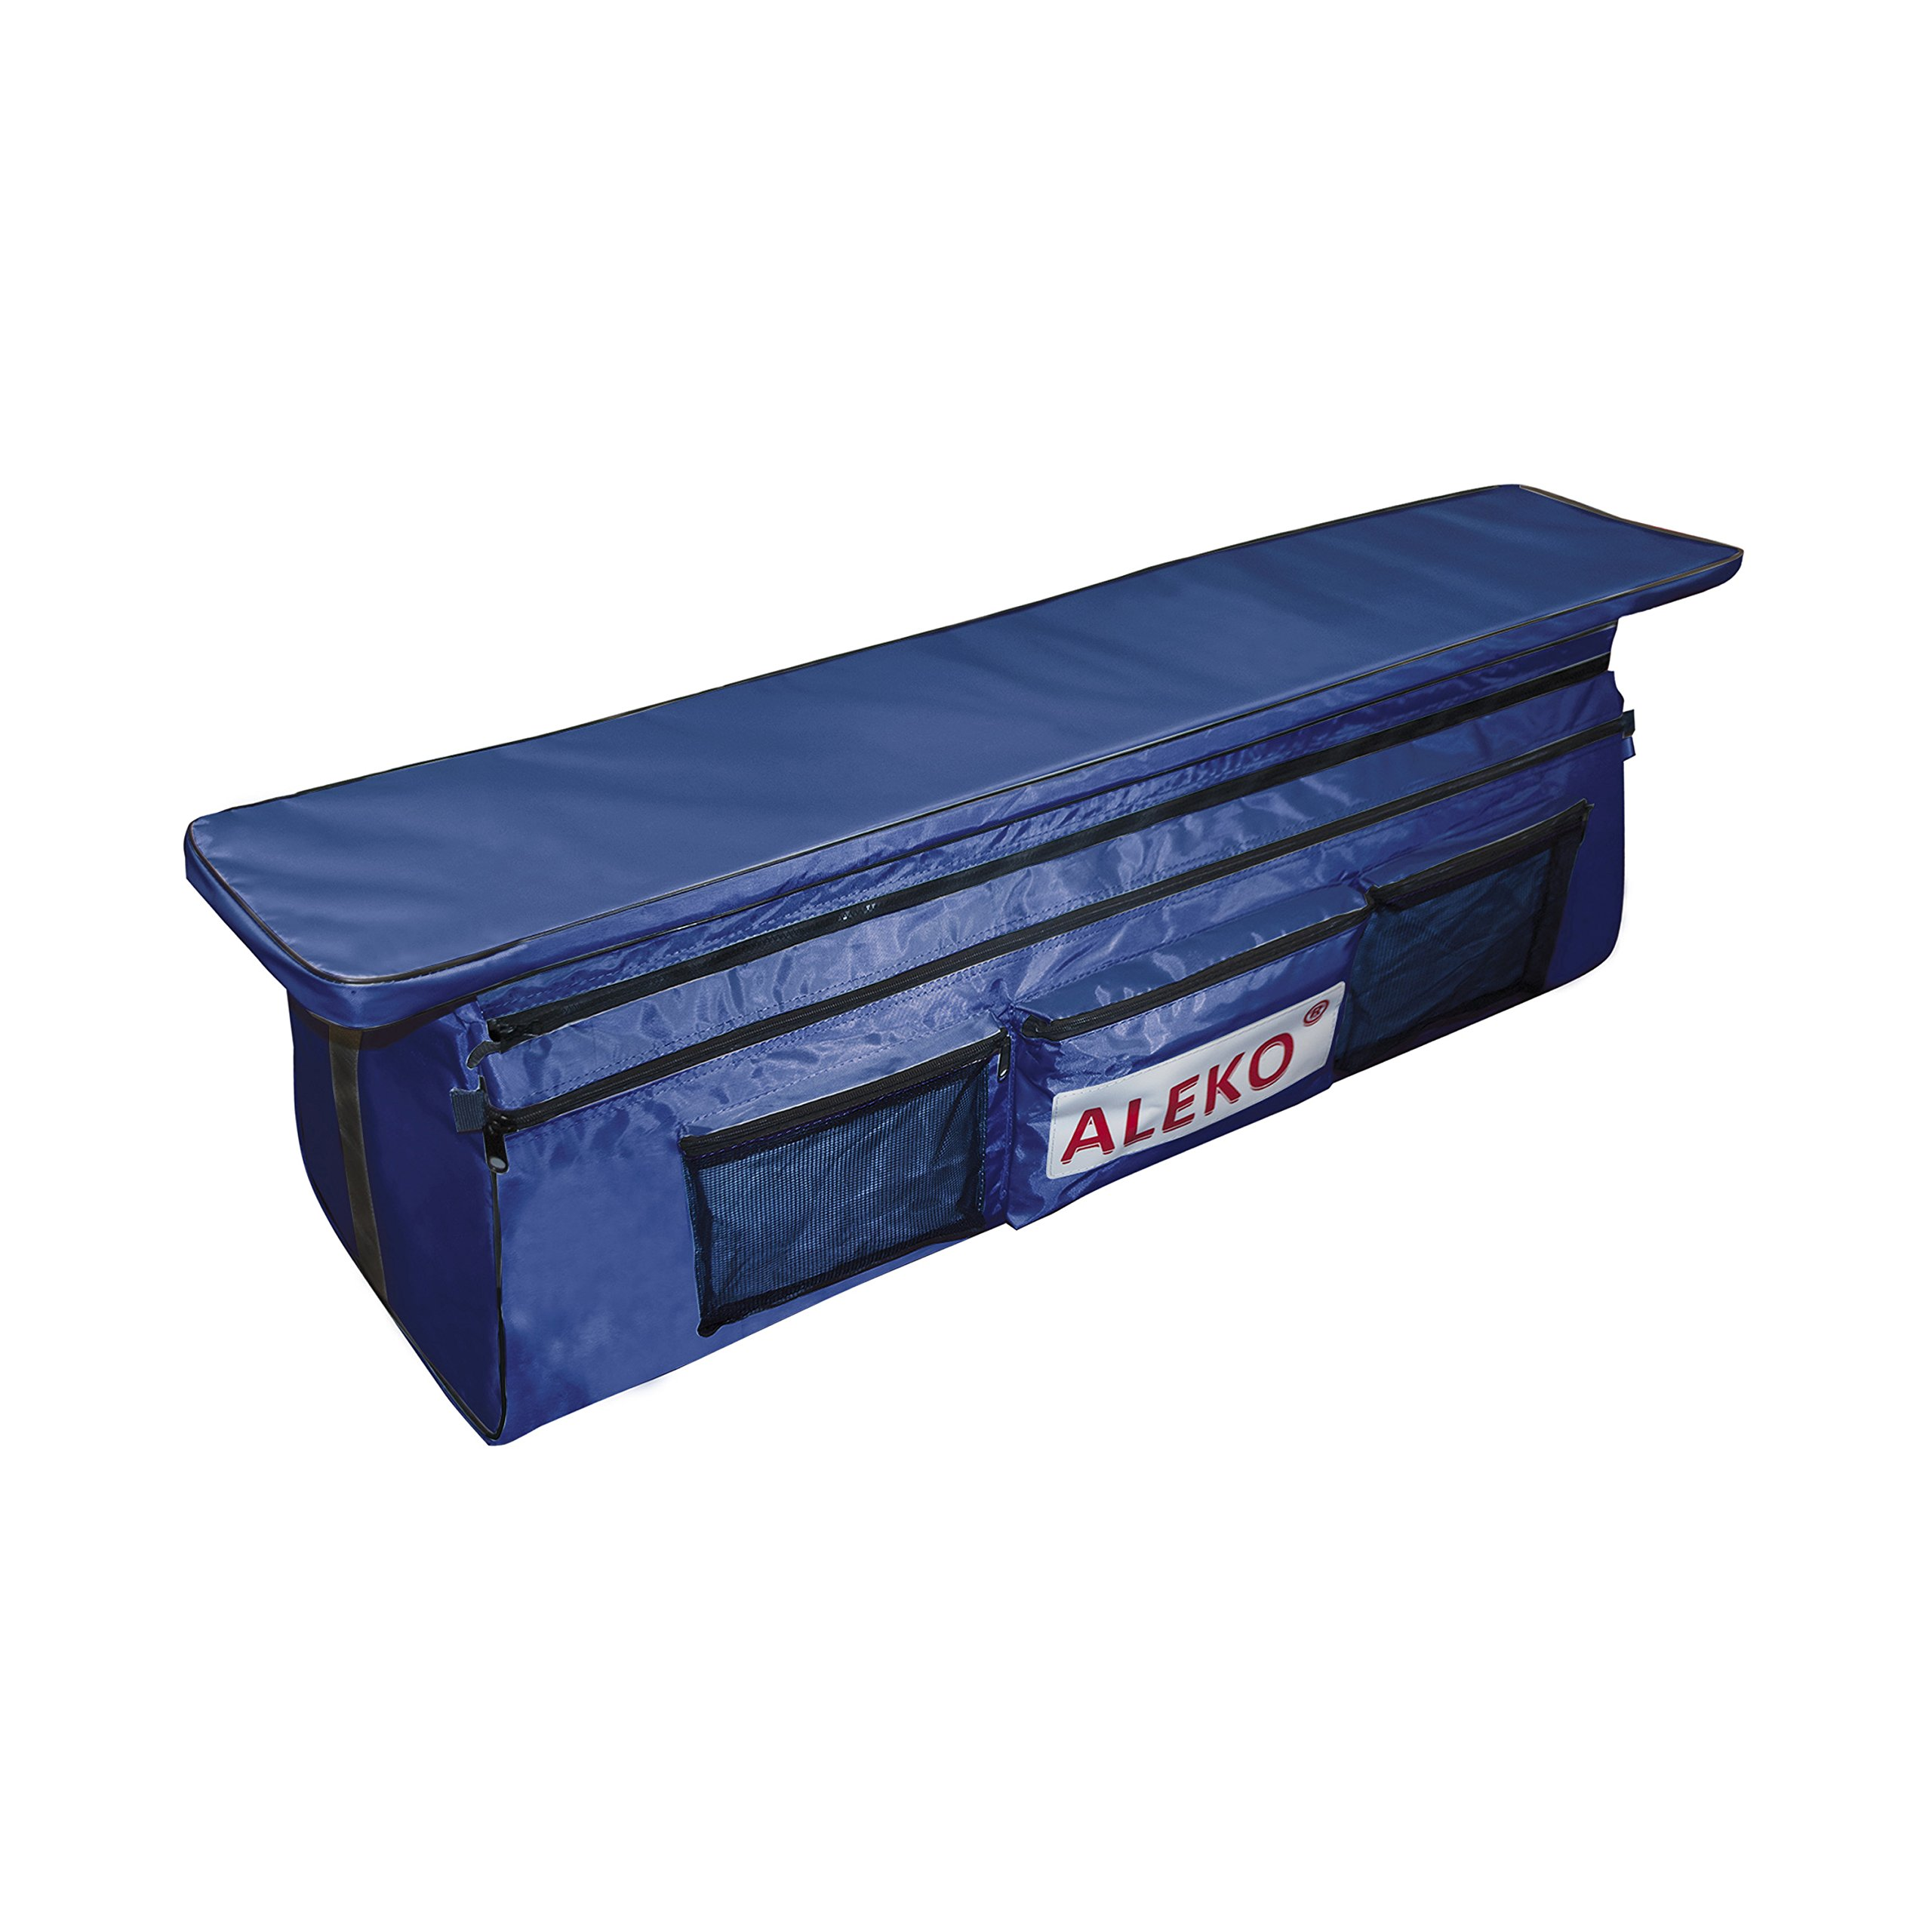 ALEKO BSB420BV2 Seat Cushion with Under Seat Bag with Pockets for 13 or 14 Foot Inflatable Boats 41 x 9 Inches Blue